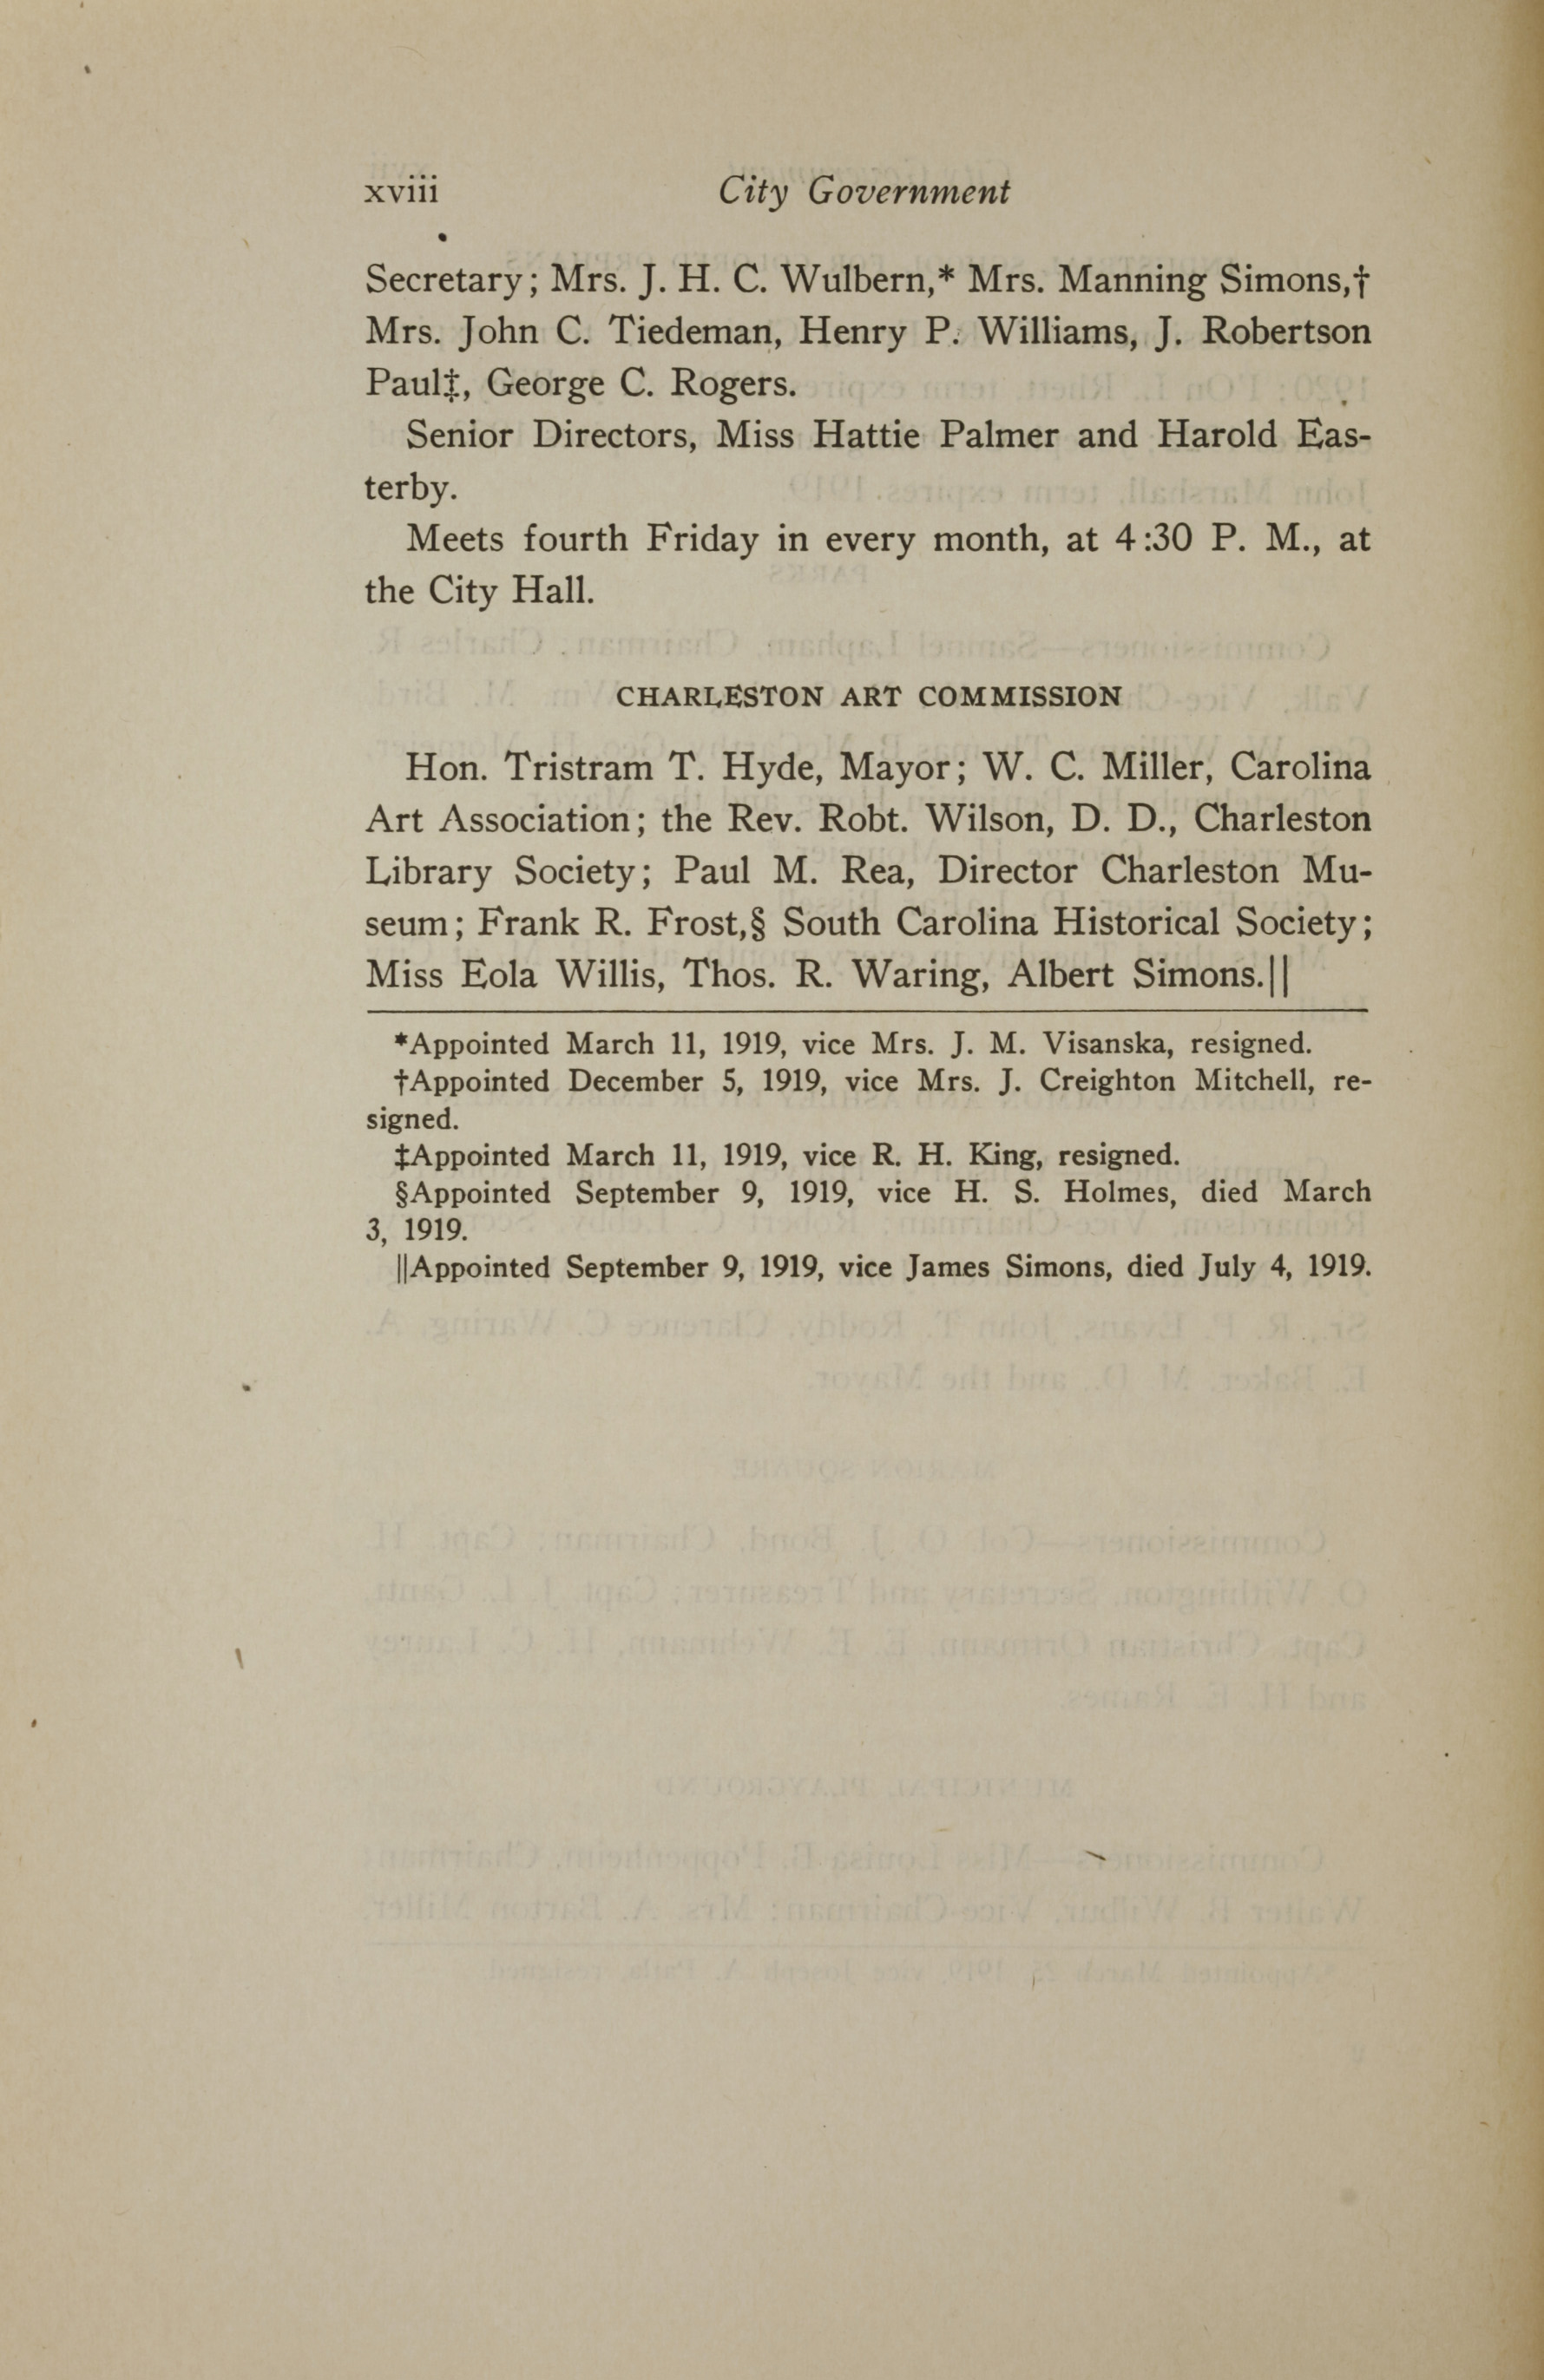 Charleston Yearbook, 1919, page xviii